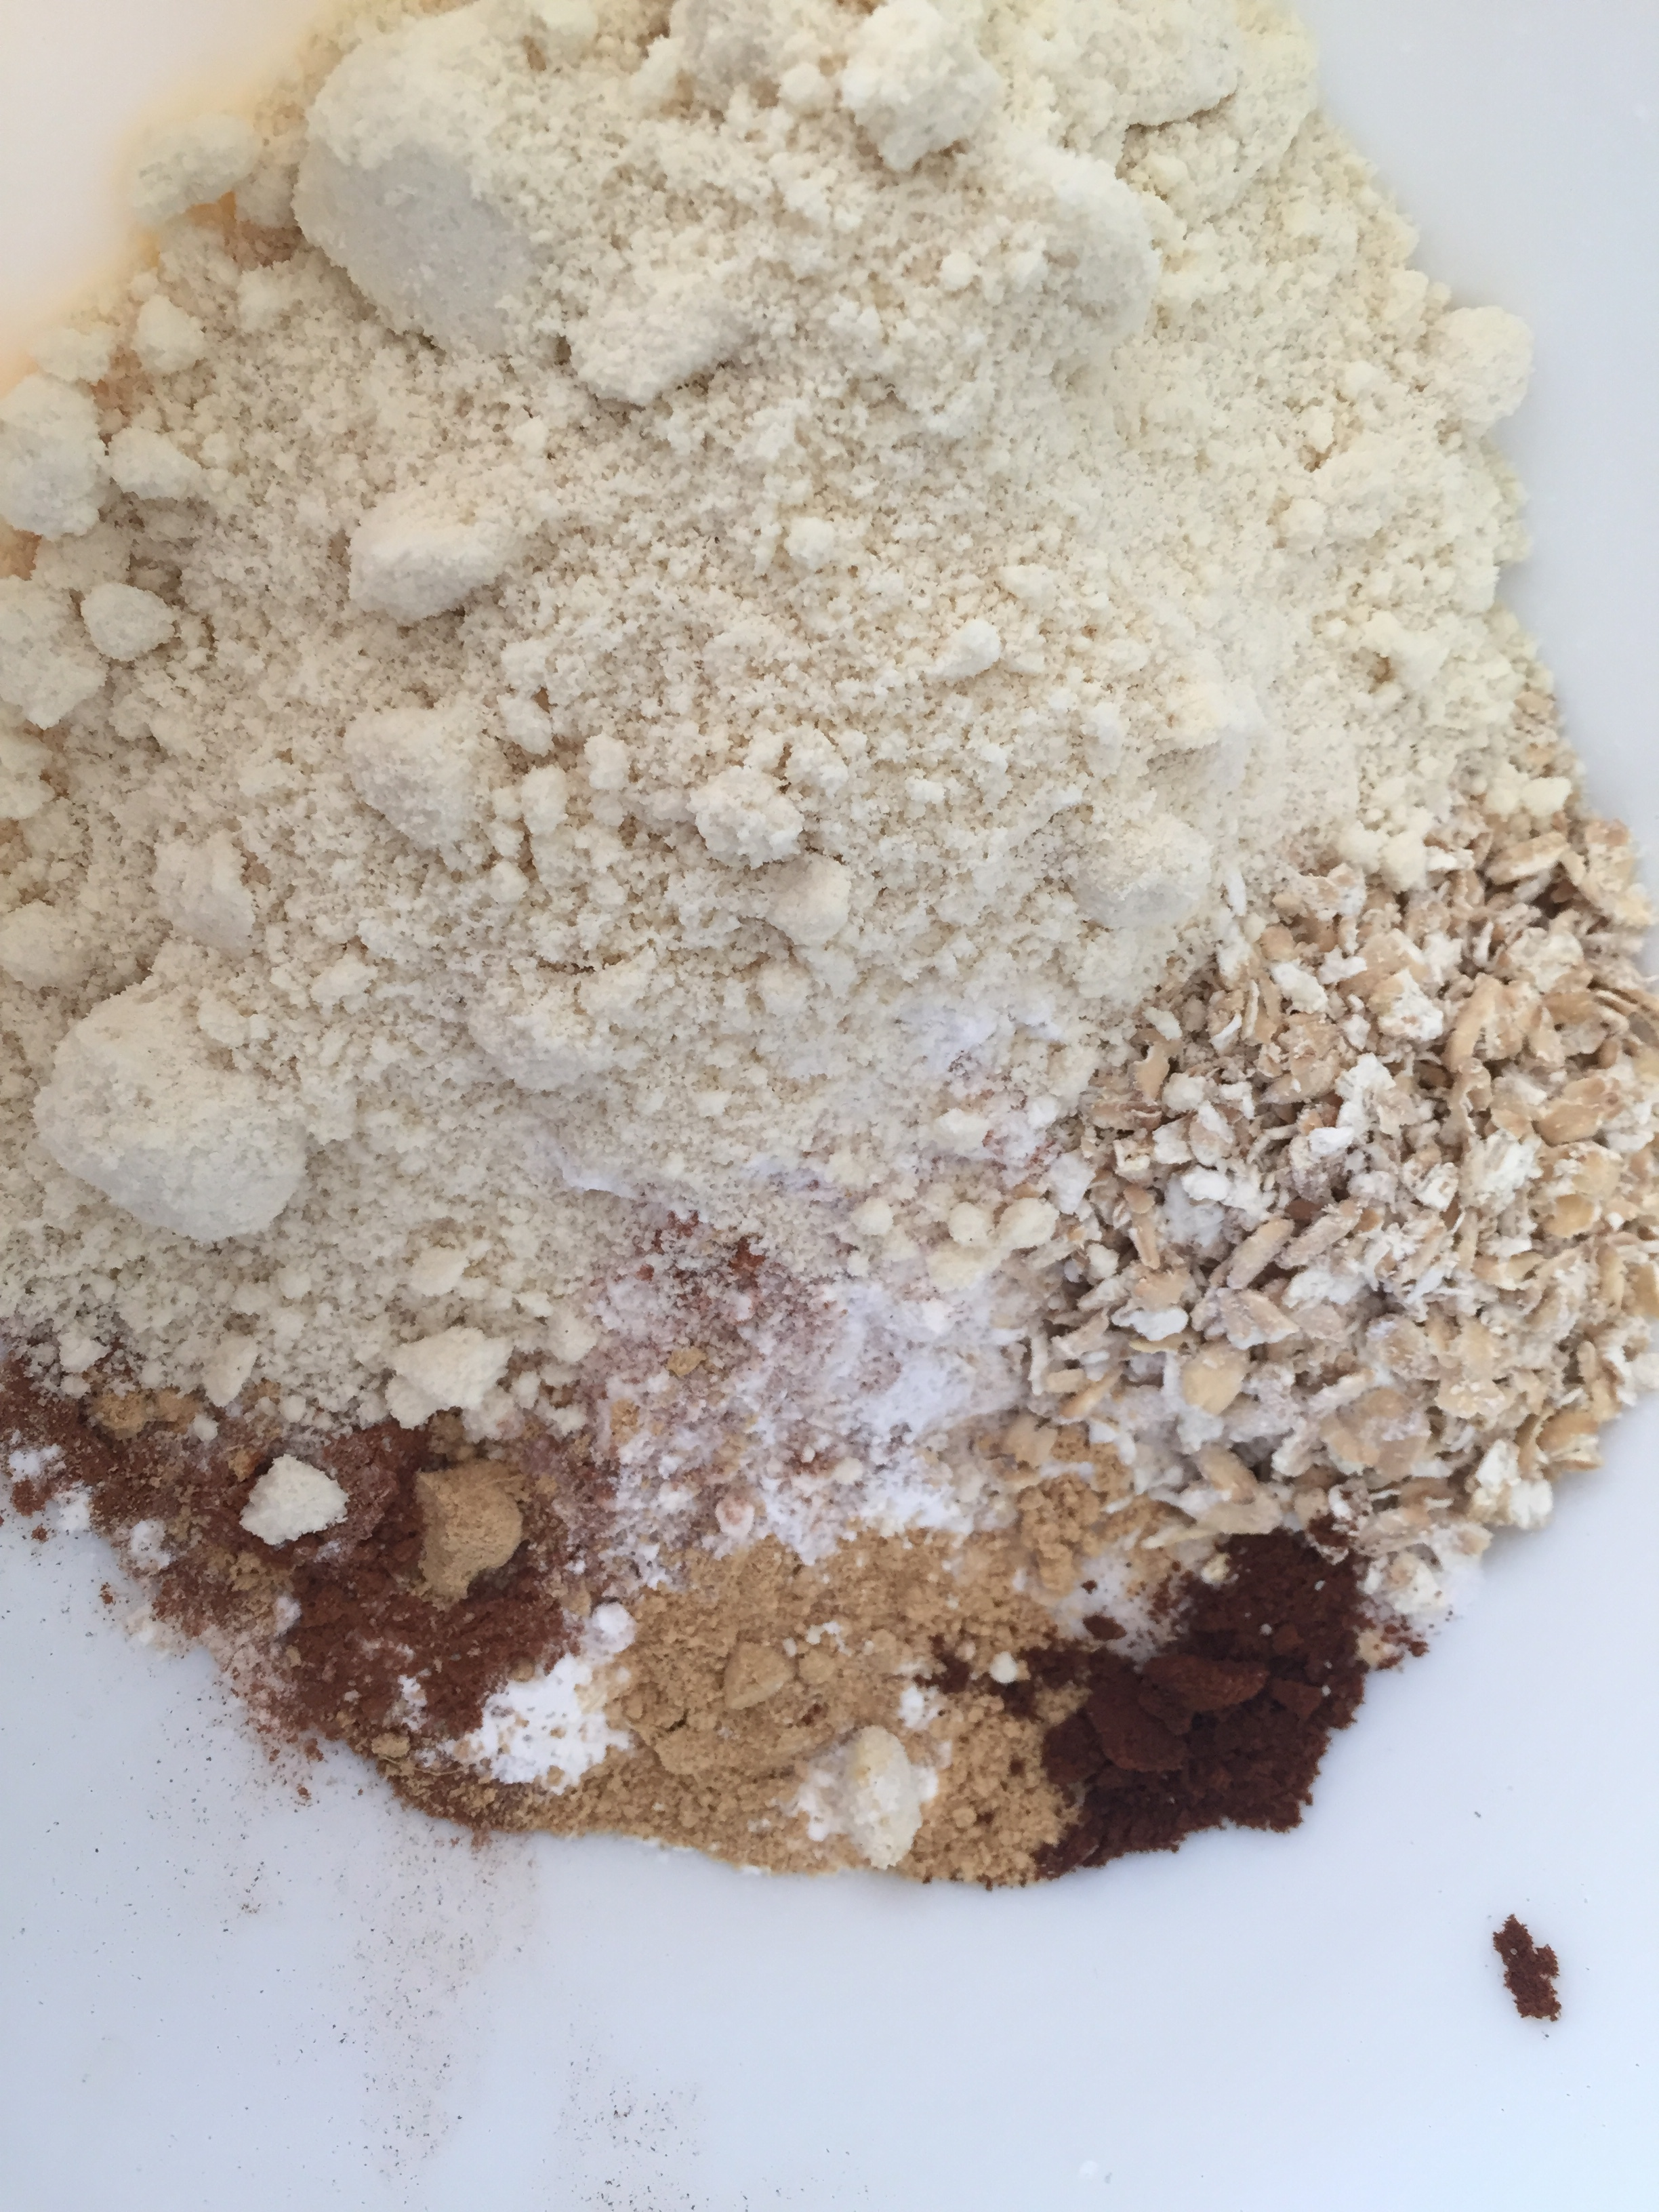 Almond meal/almond flour, spices, oats, and gluten-free flour.